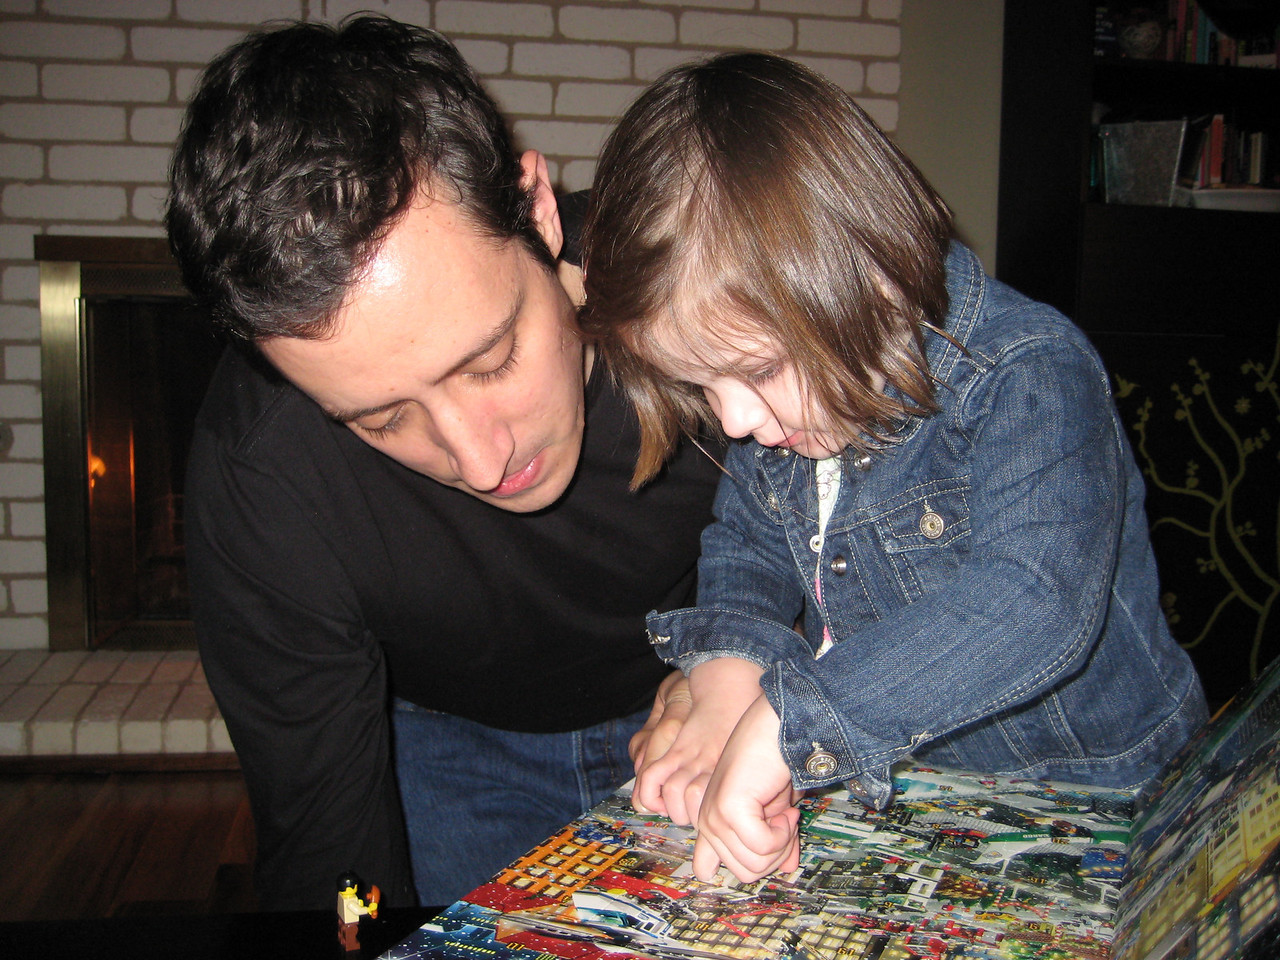 Doing the Advent calendar with Daddy